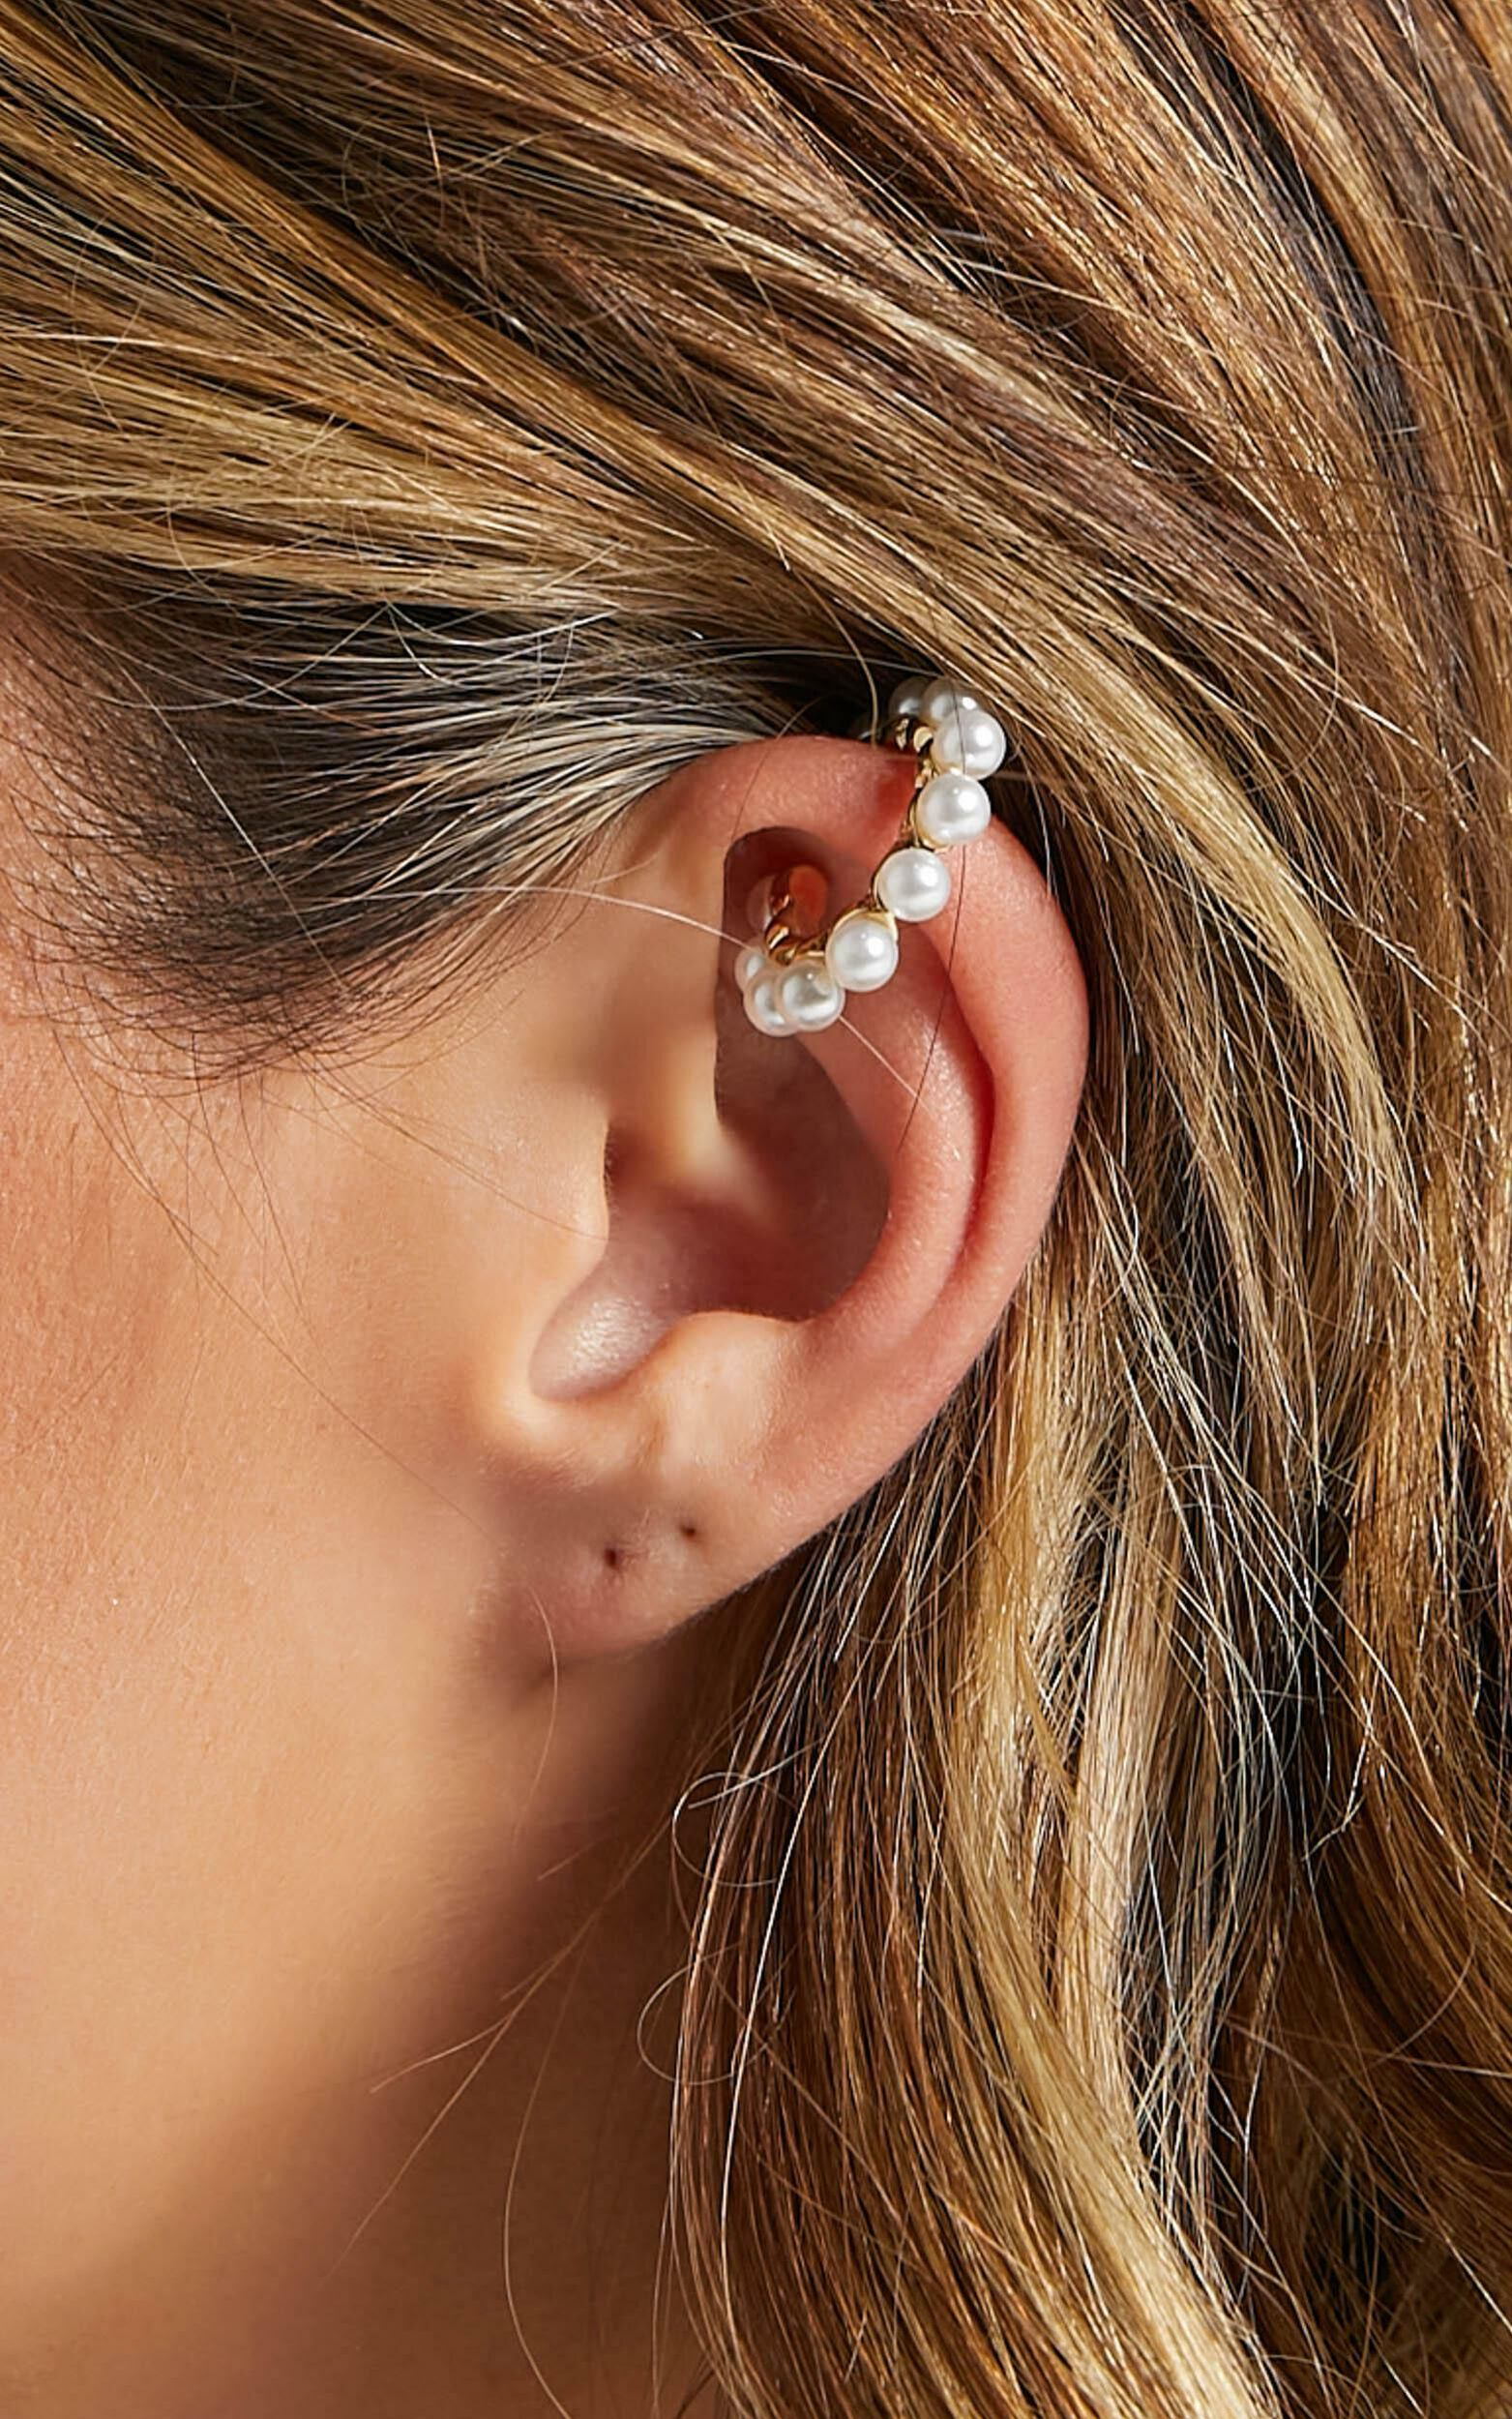 Izoa - Lei Pearl Ear Cuff in Gold, GLD1, super-hi-res image number null